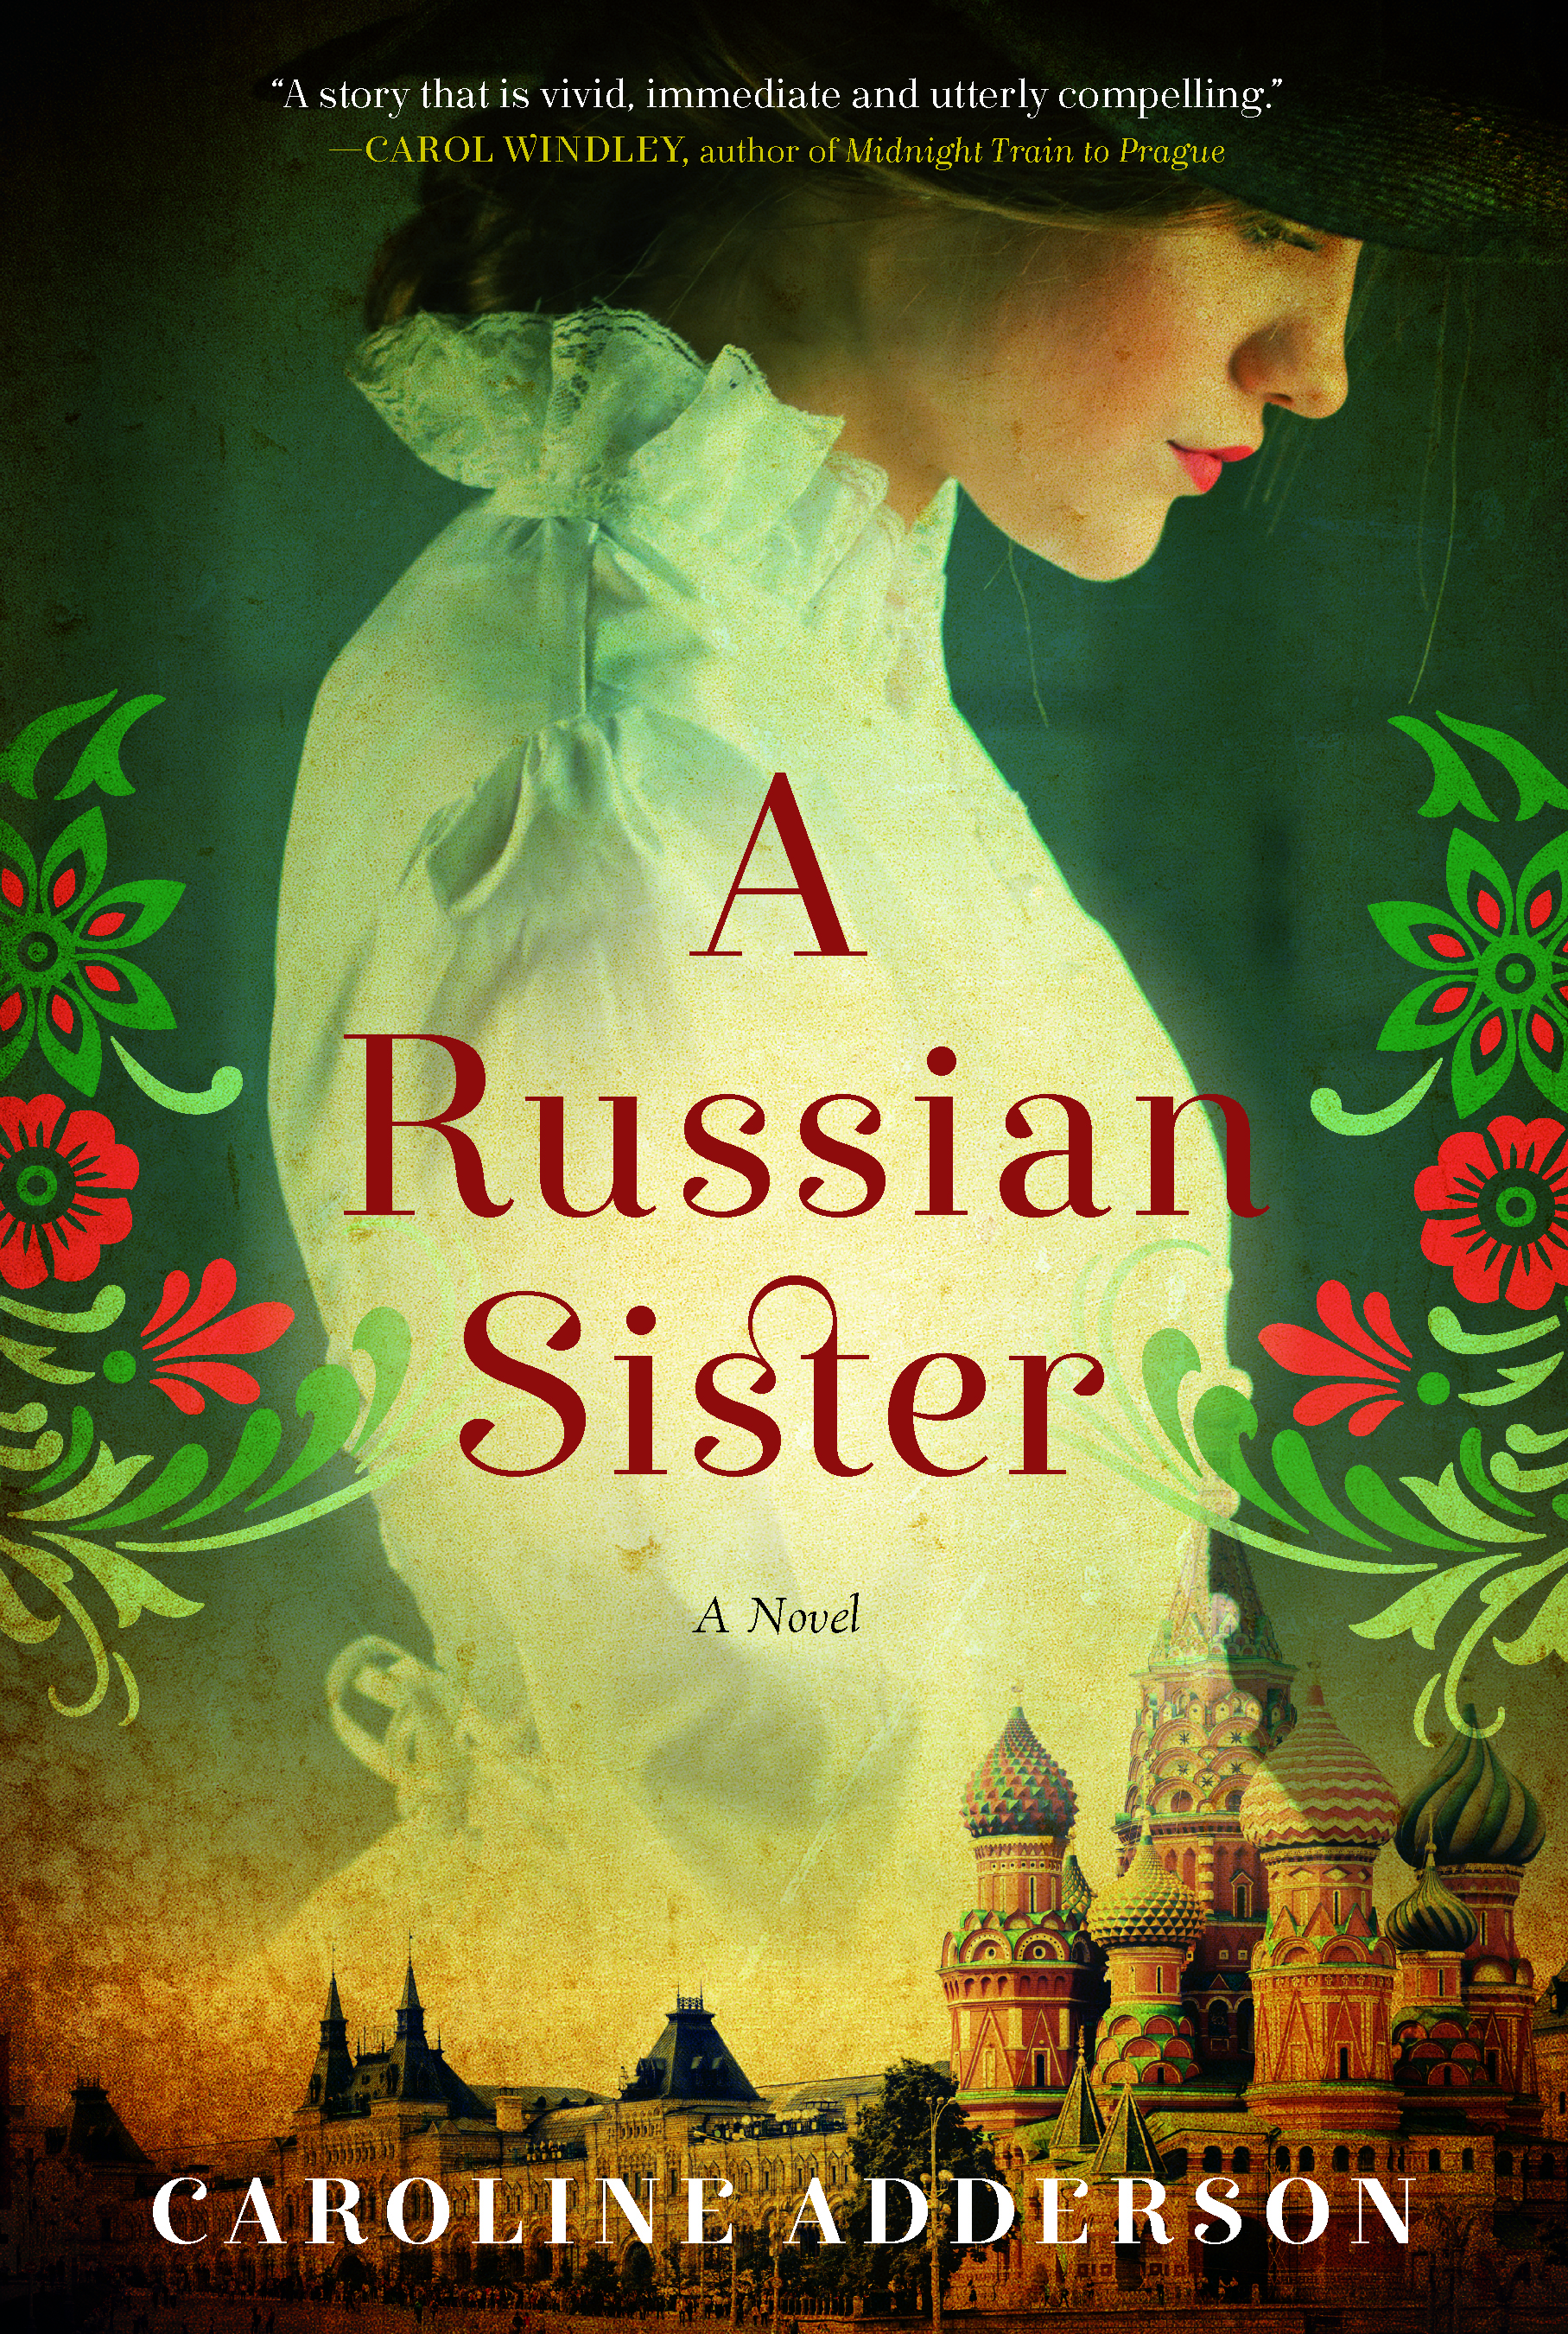 Adderson Caroline A Russian Sister Book Jacket